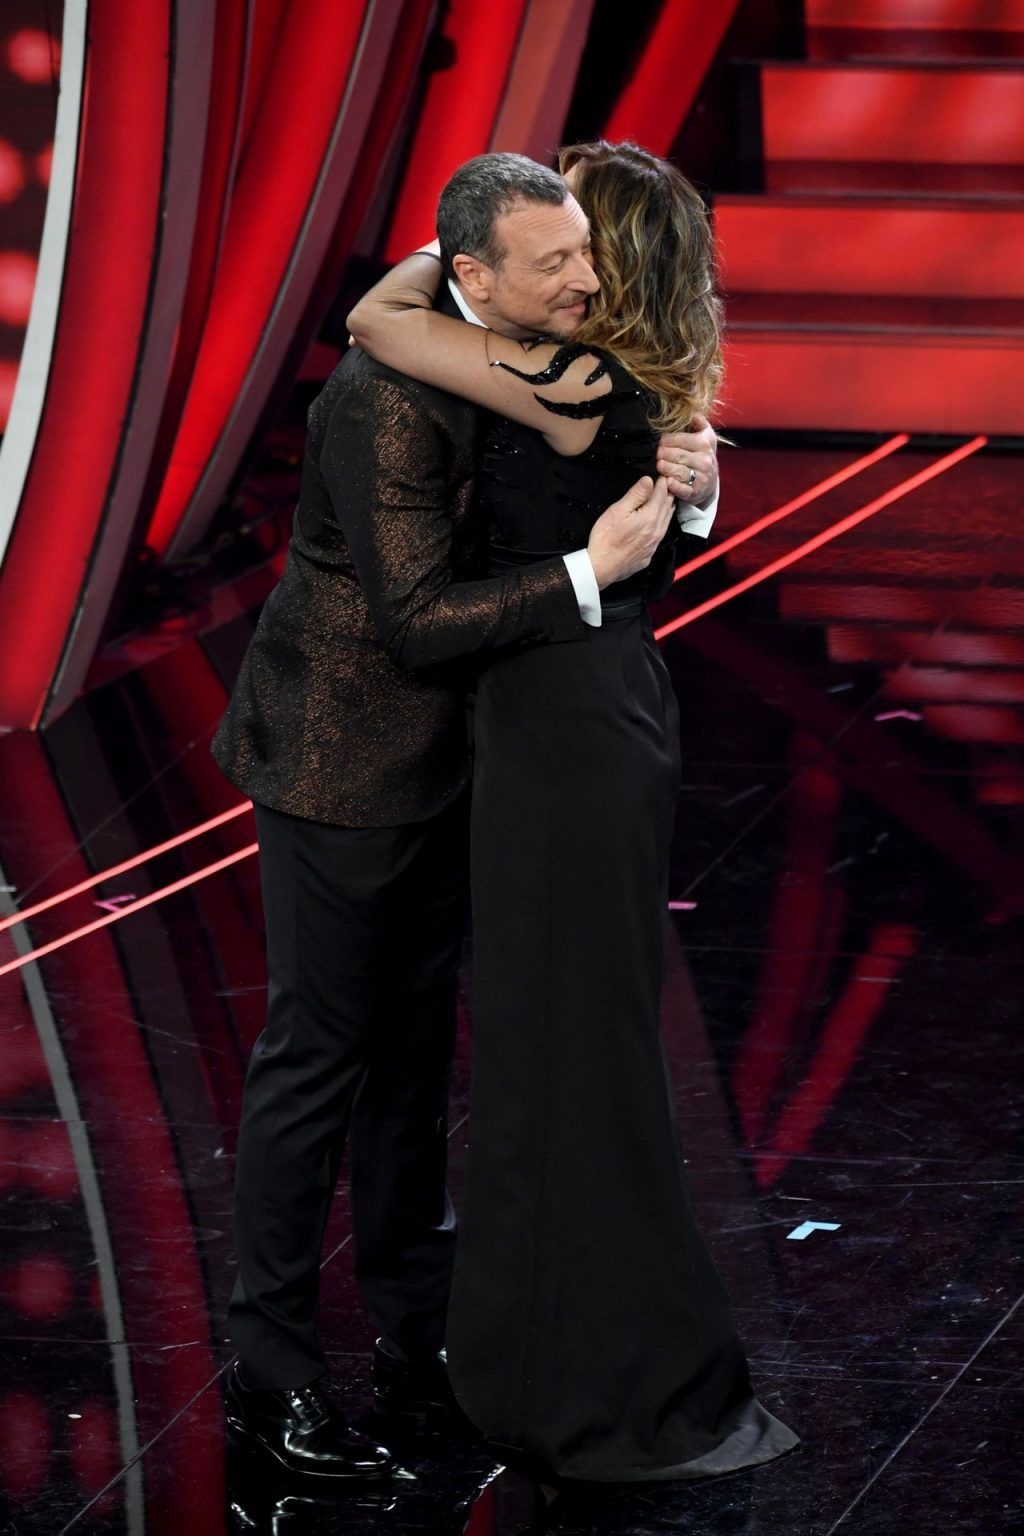 Sabrina Salerno Shows Off Her Panties and Cleavage at the Sanremo Music Festival (37 Photos)